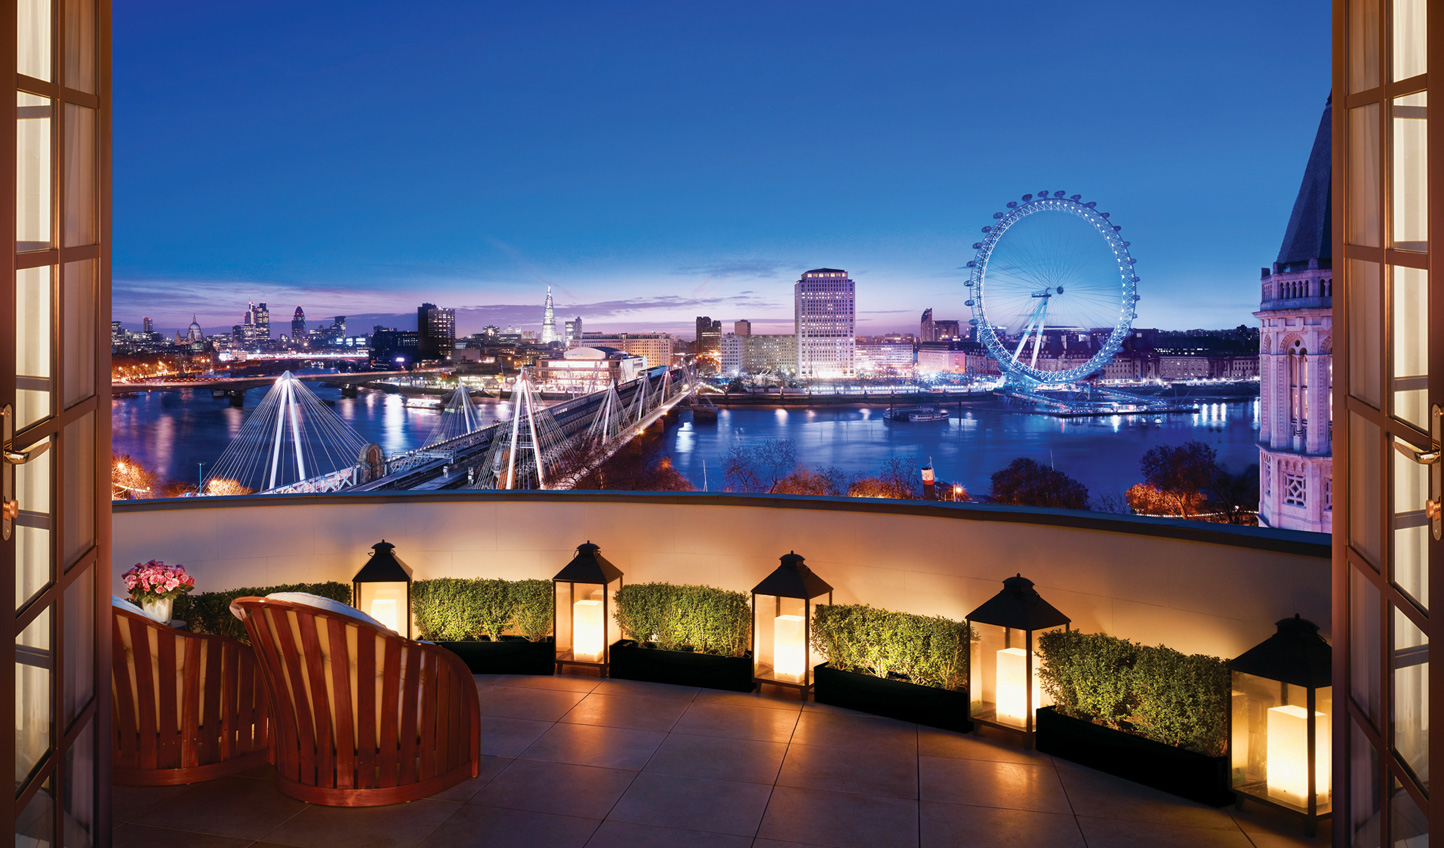 An enviable location overlooking iconic London sights